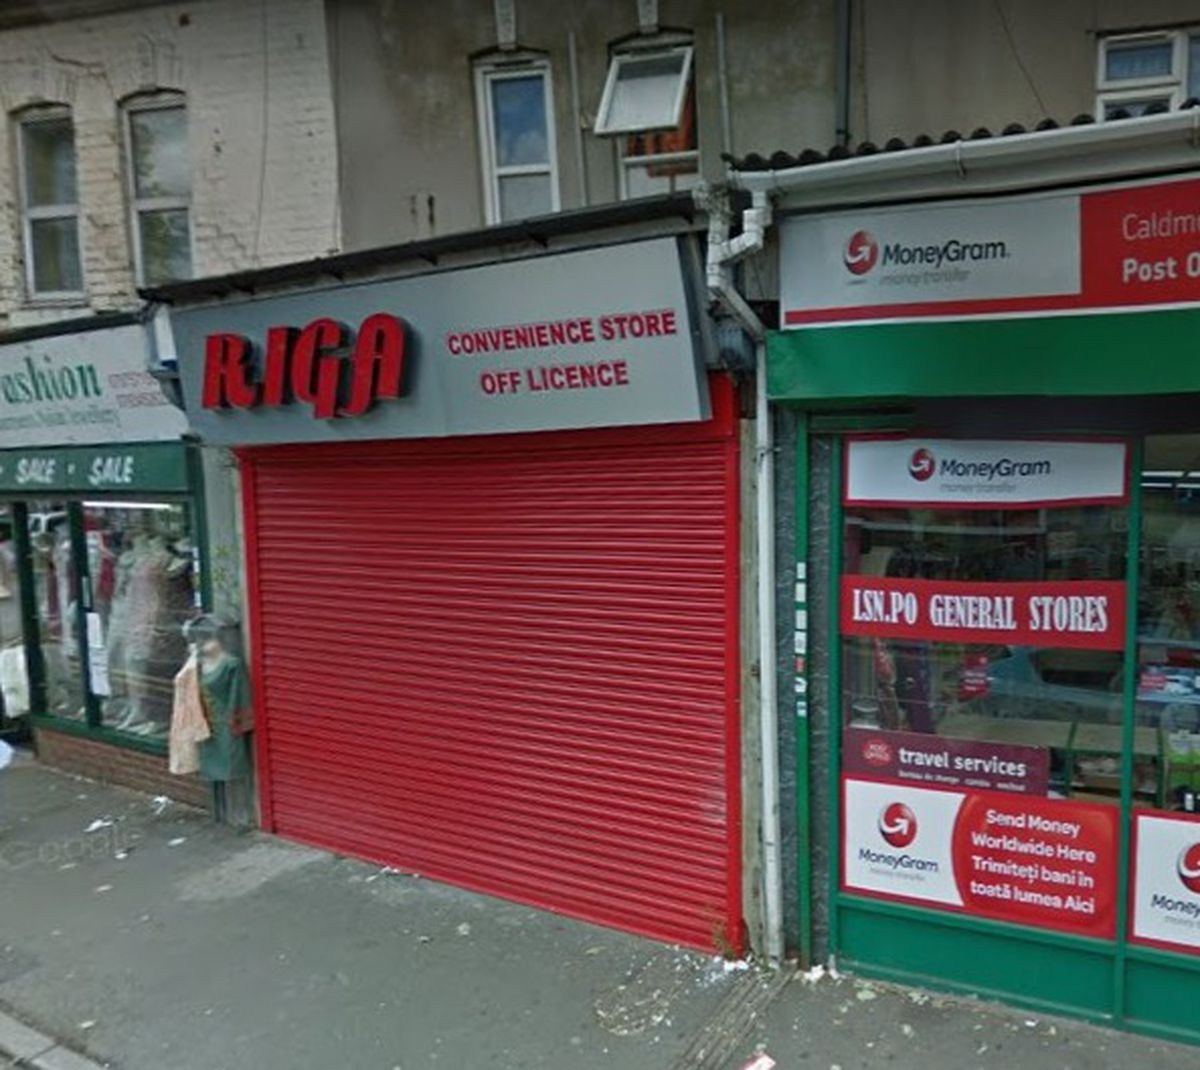 Riga convenience store in West Bromwich Street, Caldmore, Walsall. PIC: Google Street View